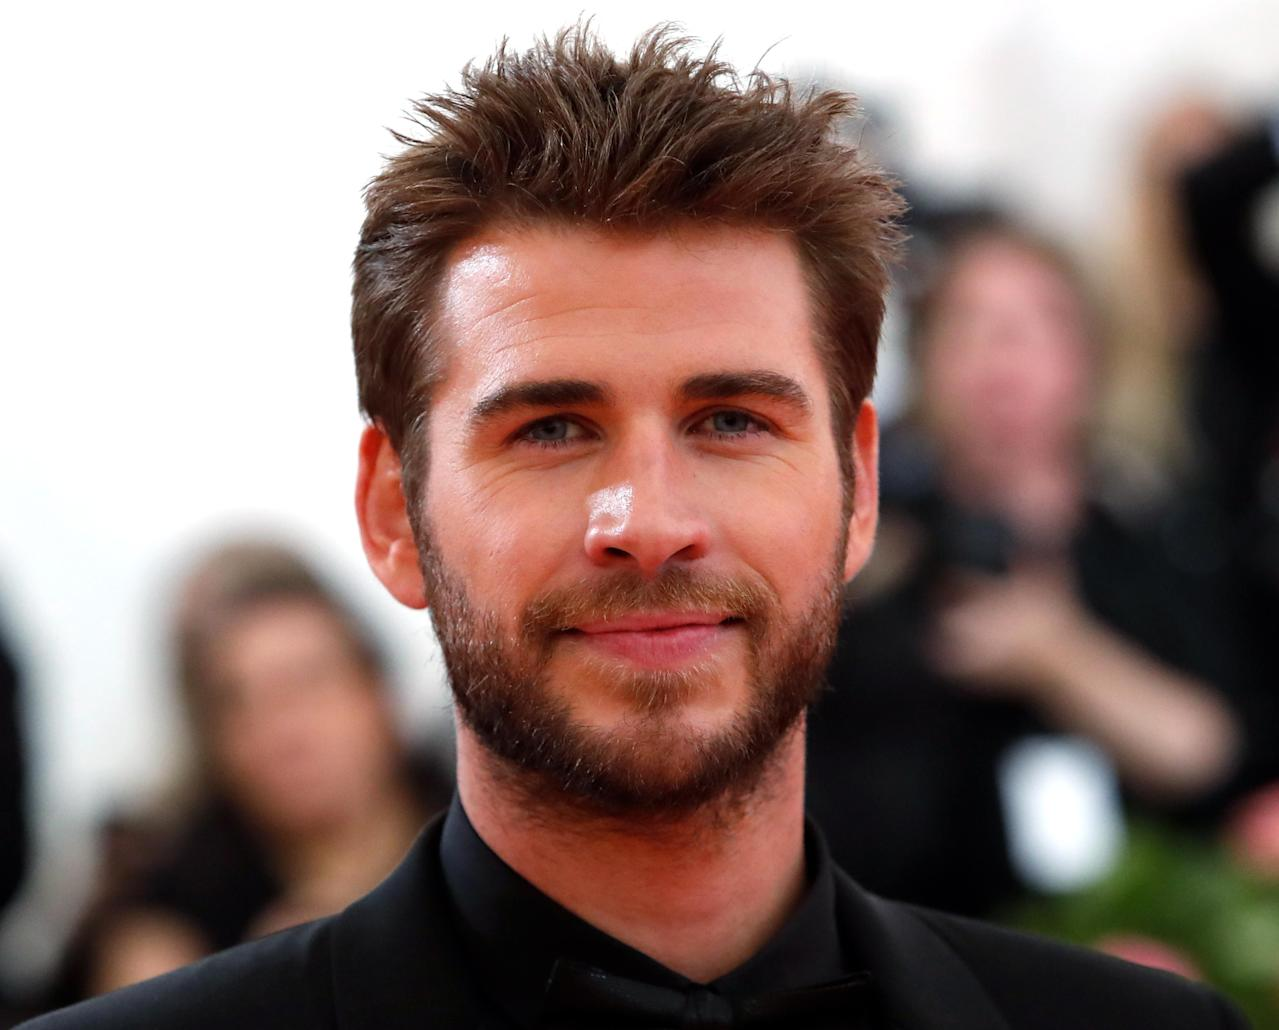 Liam Hemsworth's mystery woman identified as Maddison Brown: What you need to know about the Australian 'Dynasty' star